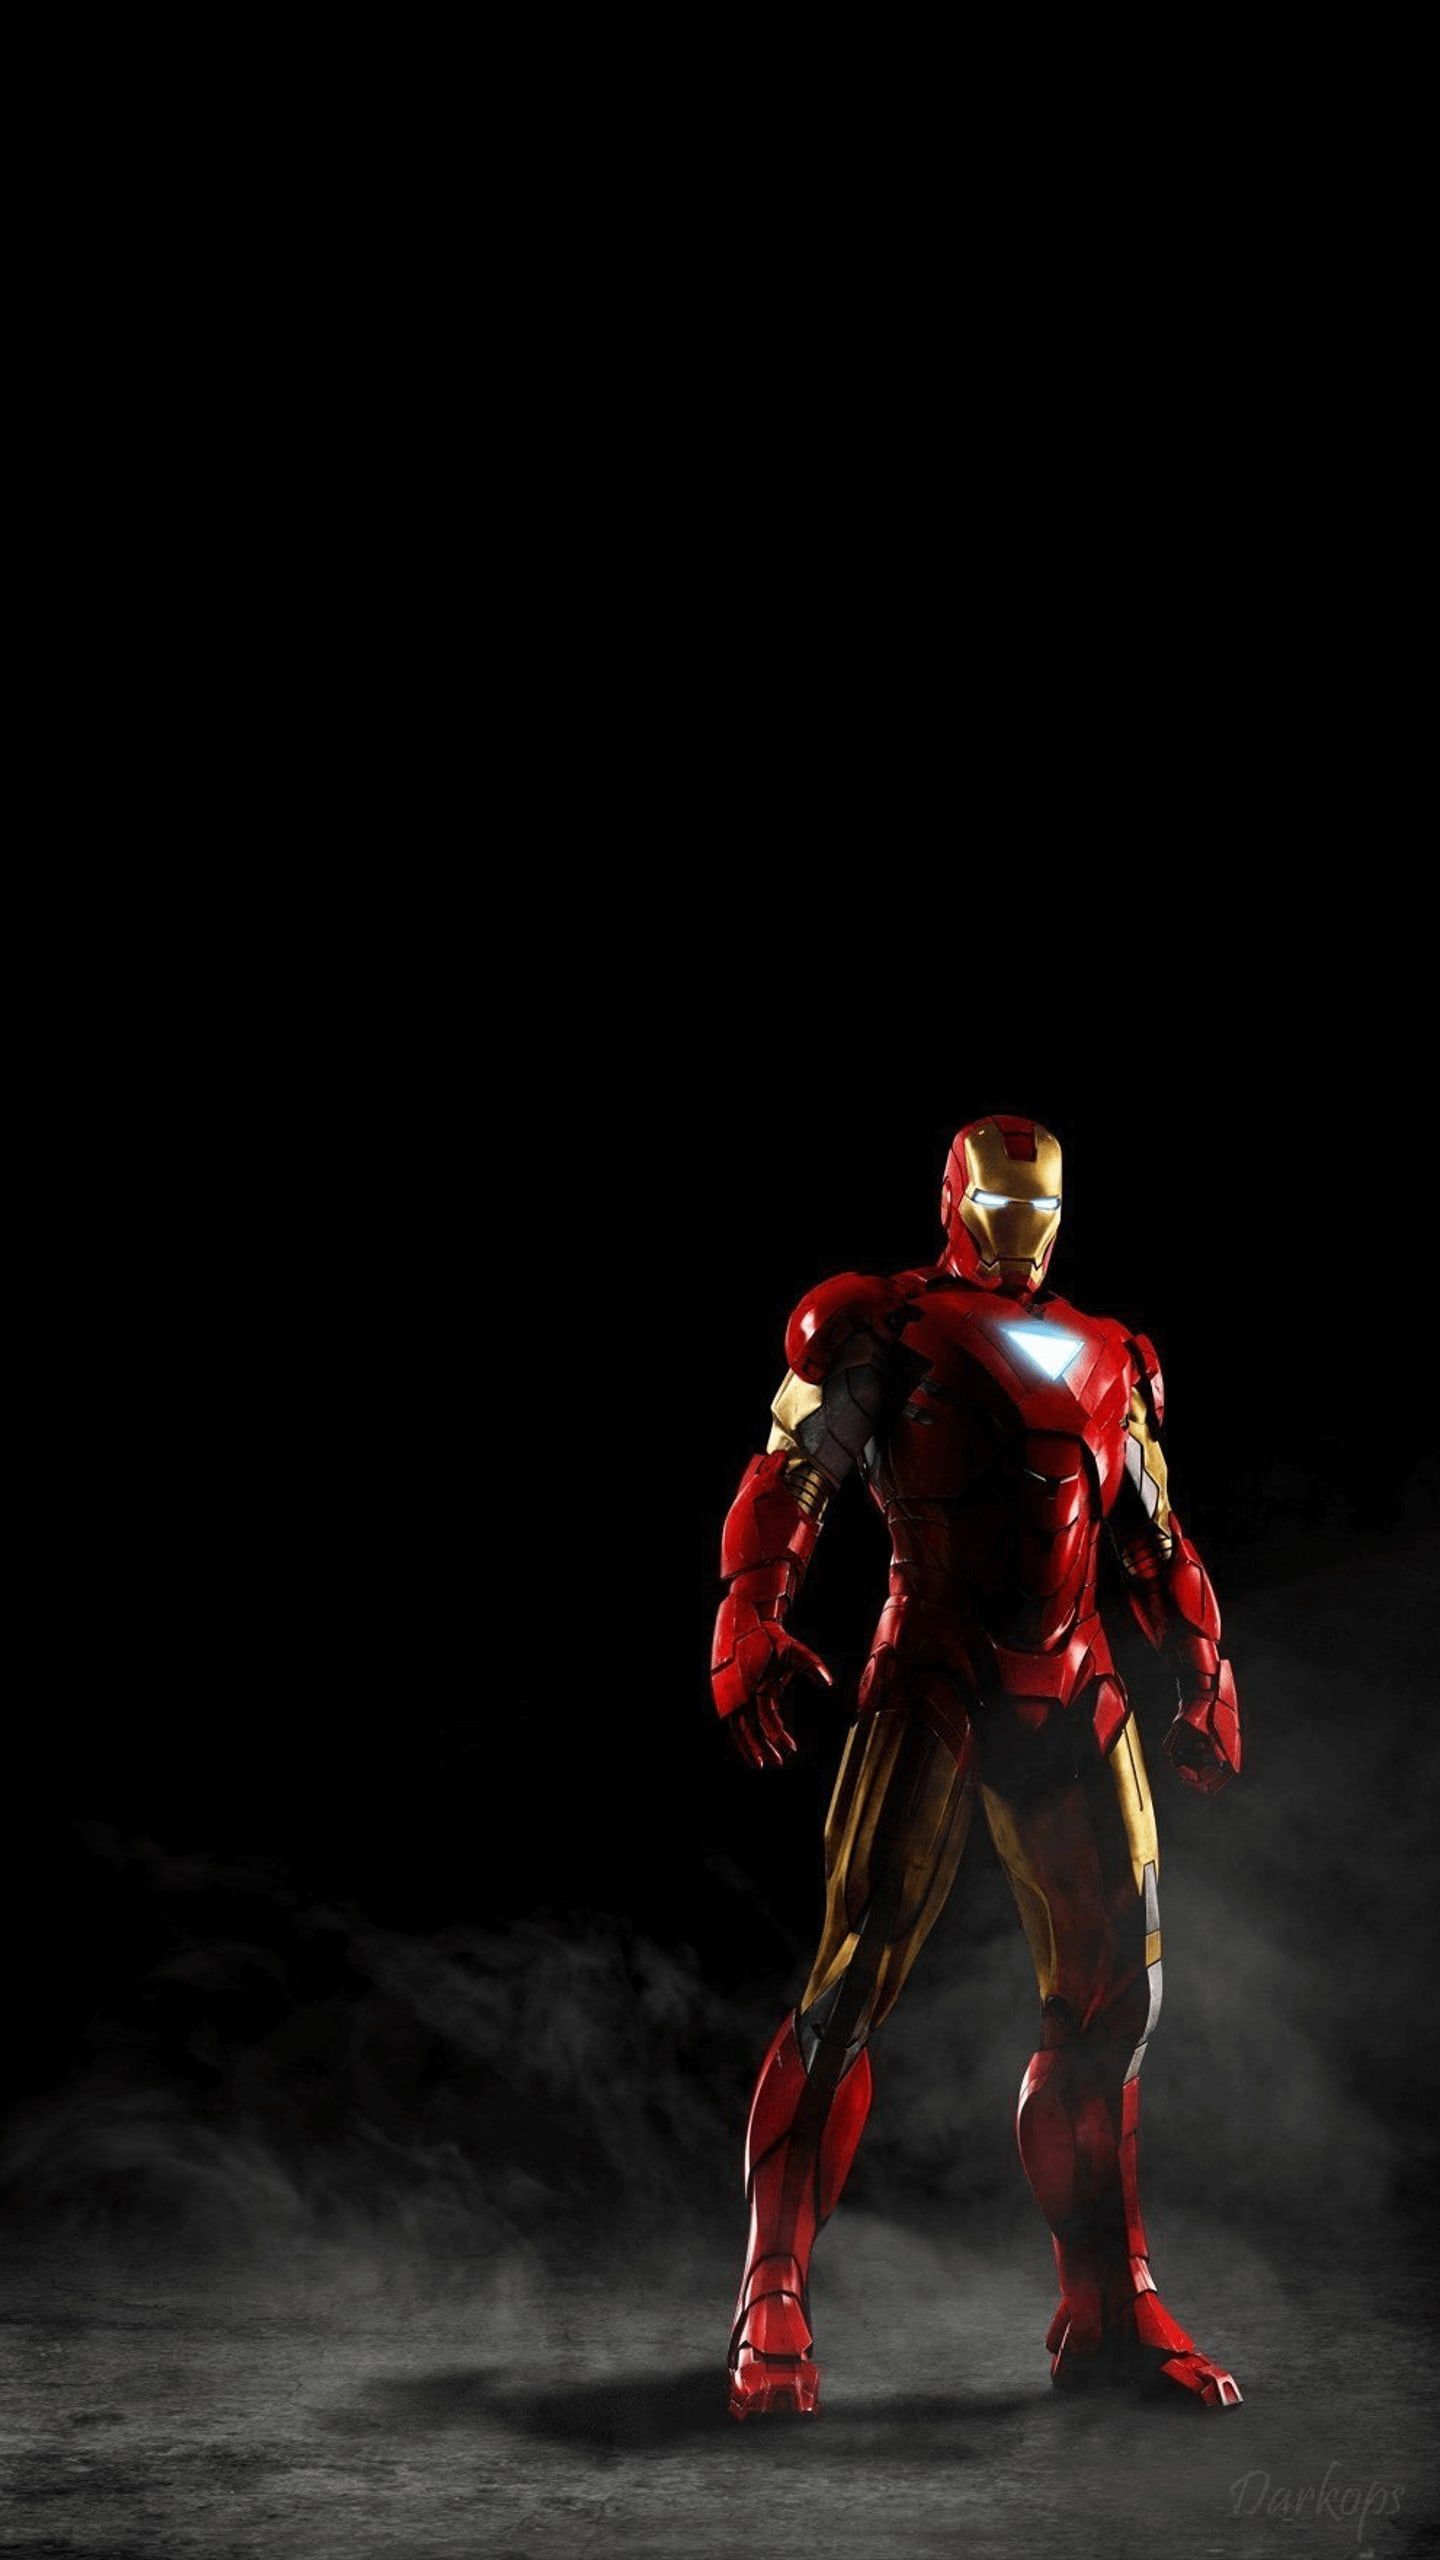 Amoled Wallpaper 68 Man Wallpaper Iron Man Wallpaper Iron Man